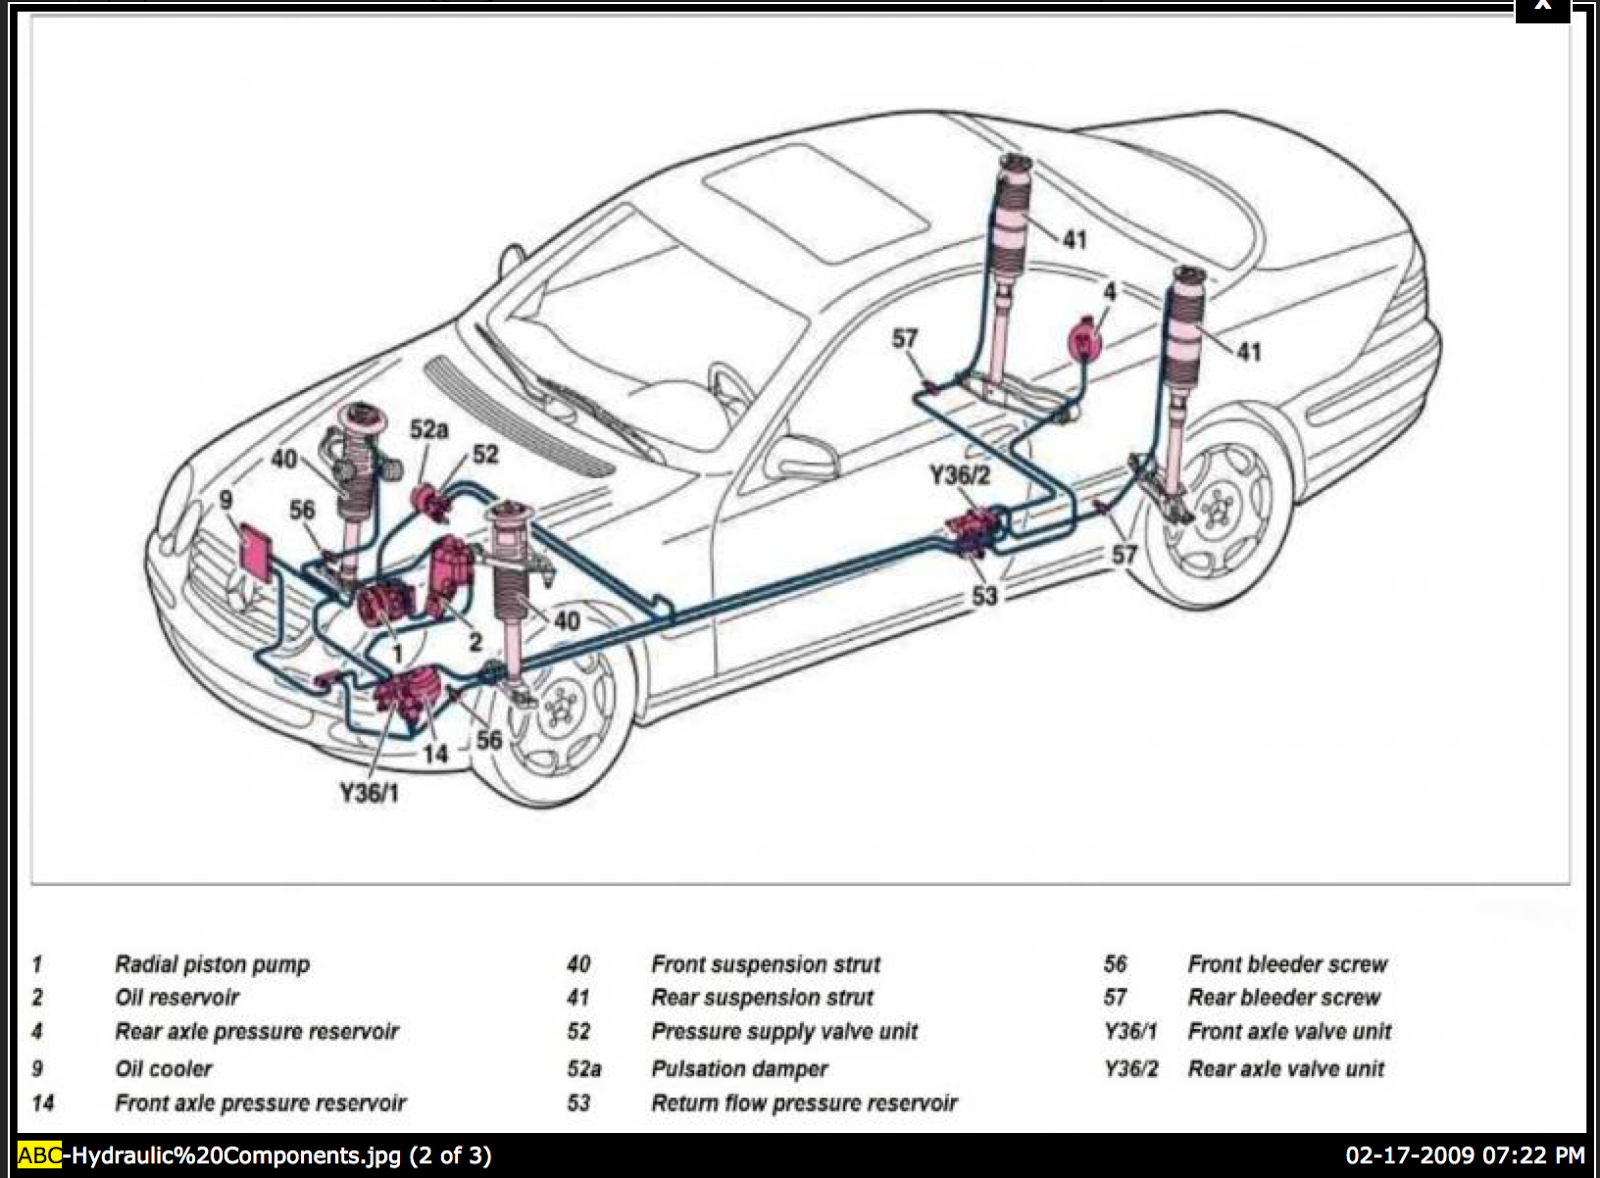 mercedes benz abc system troubleshooting guide r230 component locations [ 1600 x 1178 Pixel ]